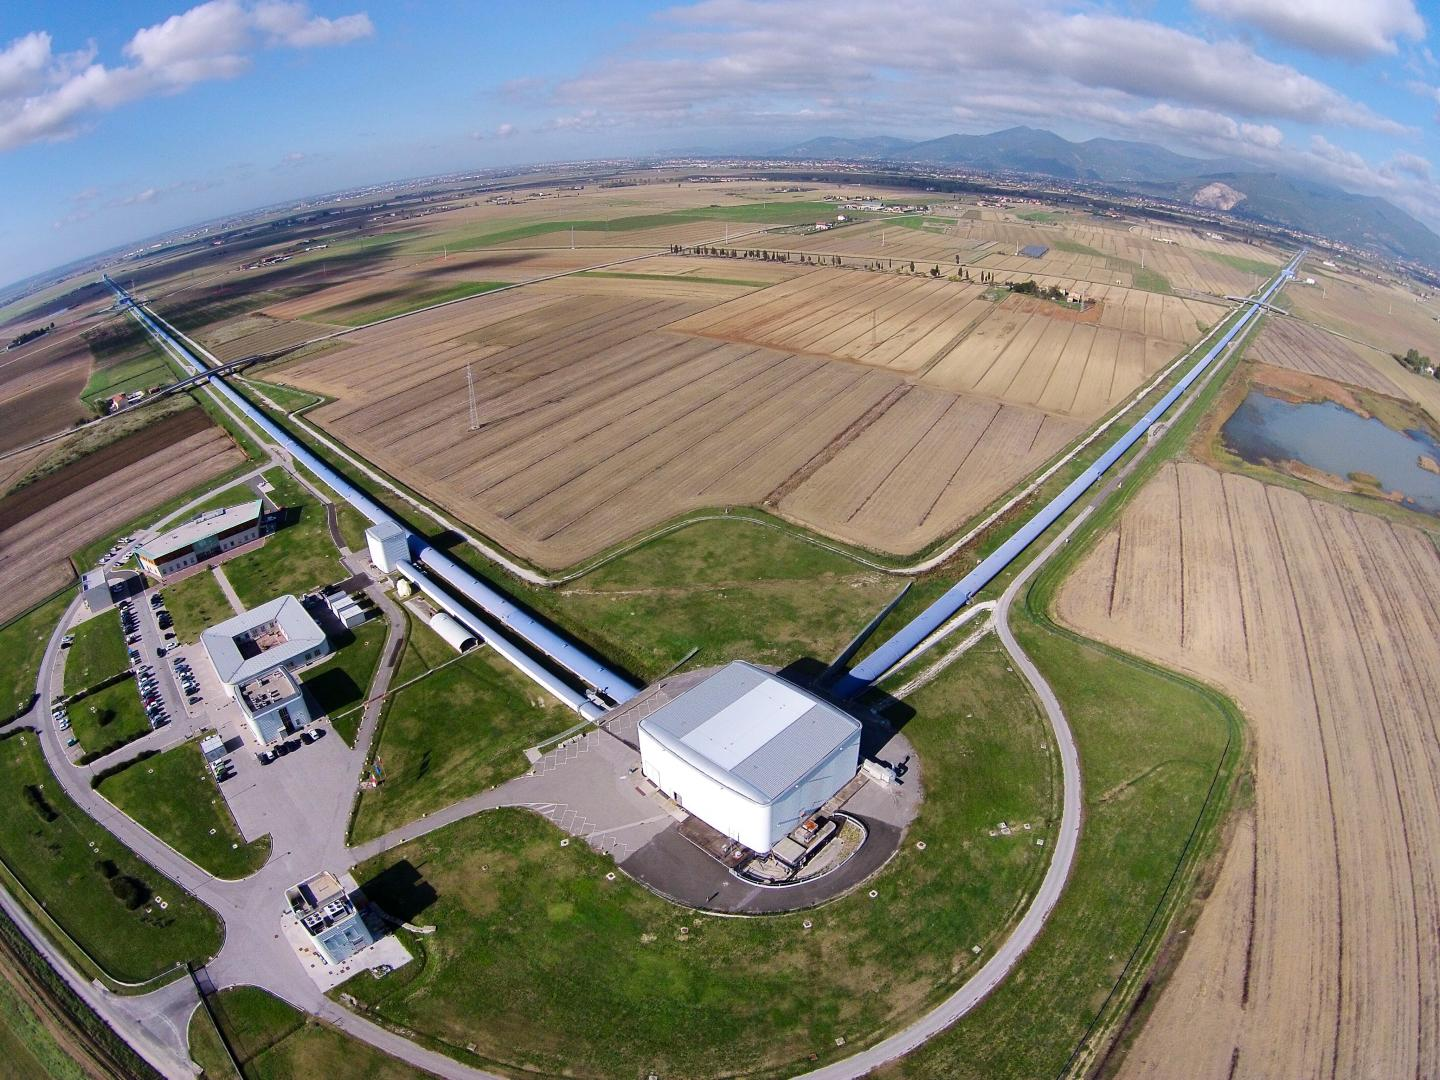 An Aerial View of the Virgo Gravitational Wave Interferometer in Cascina, Italy